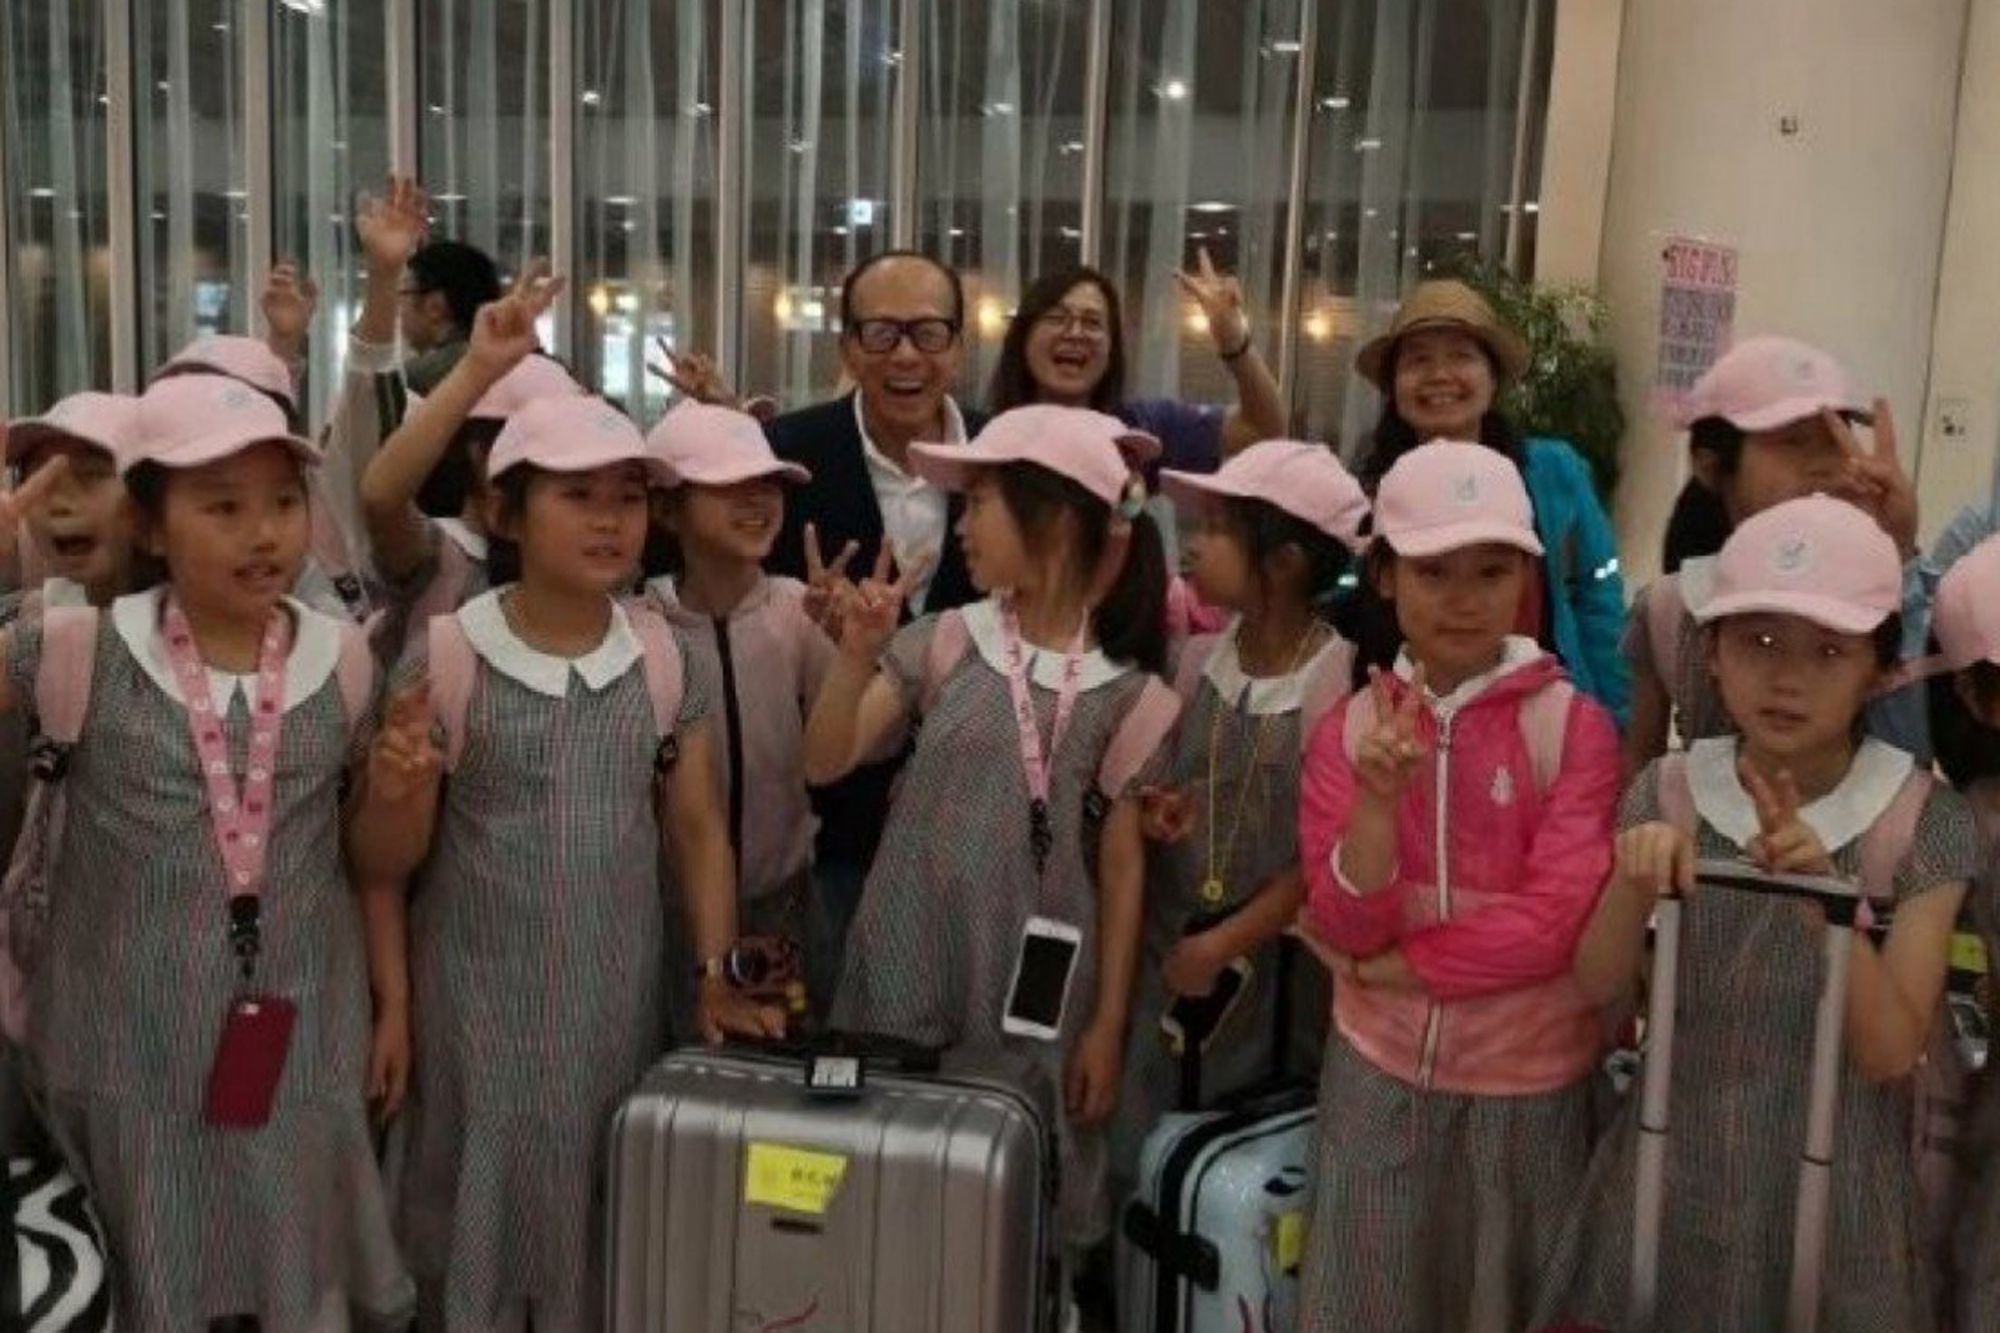 Li Ka-shing Meets Shanghai Dance Students at Airport, Pays for Their Trip